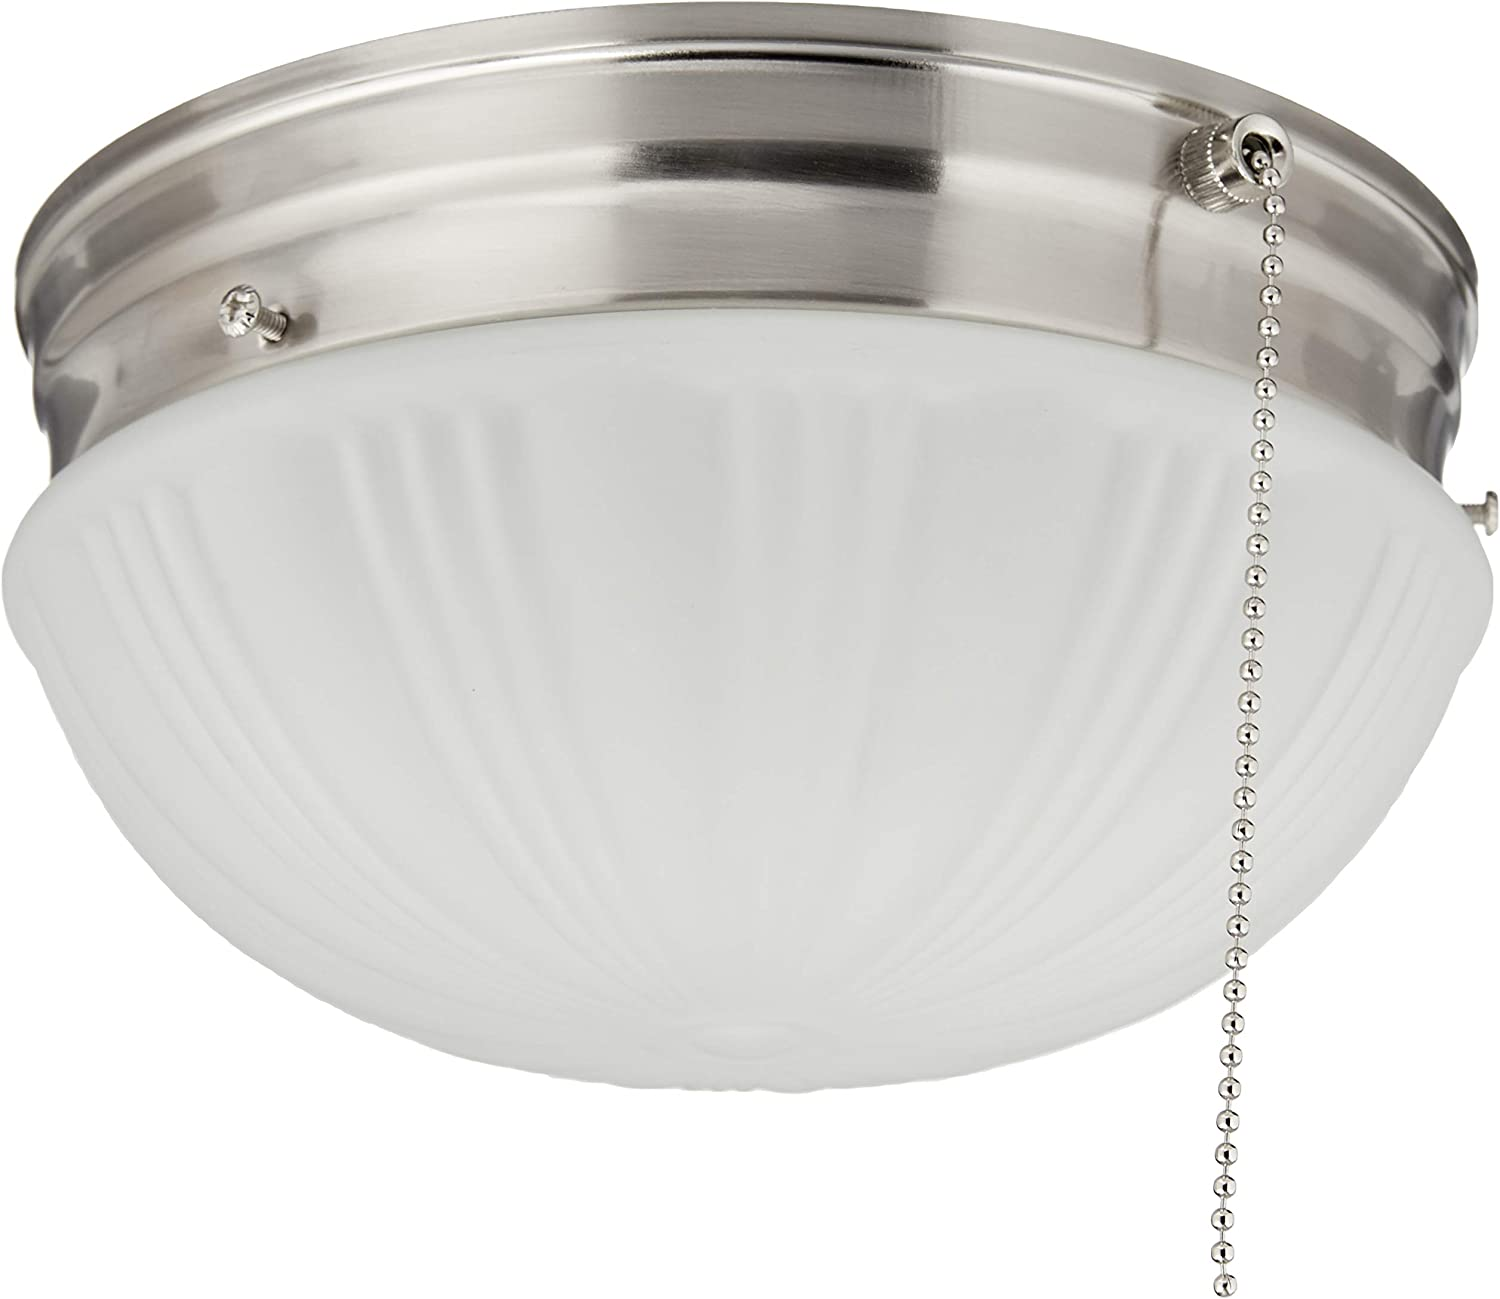 Amazon Com Westinghouse Lighting 6721000 Two Light Flush Mount Interior Ceiling Fixture With Pull Chain Brushed Nickel Finish With Frosted Fluted Glass Home Improvement